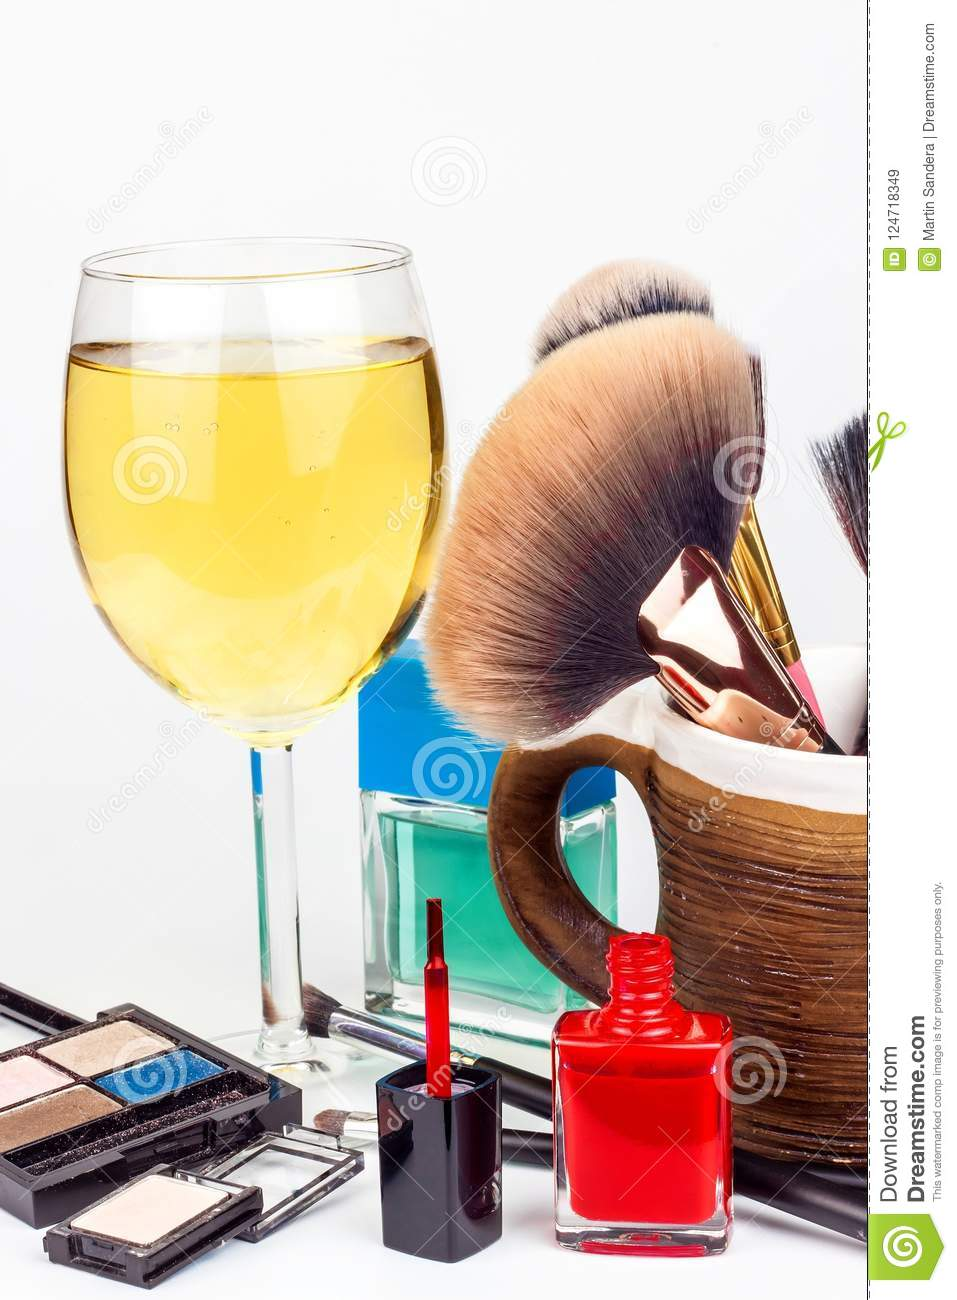 Makeup Brushes And A Glass Of White Wine  Lonely Woman